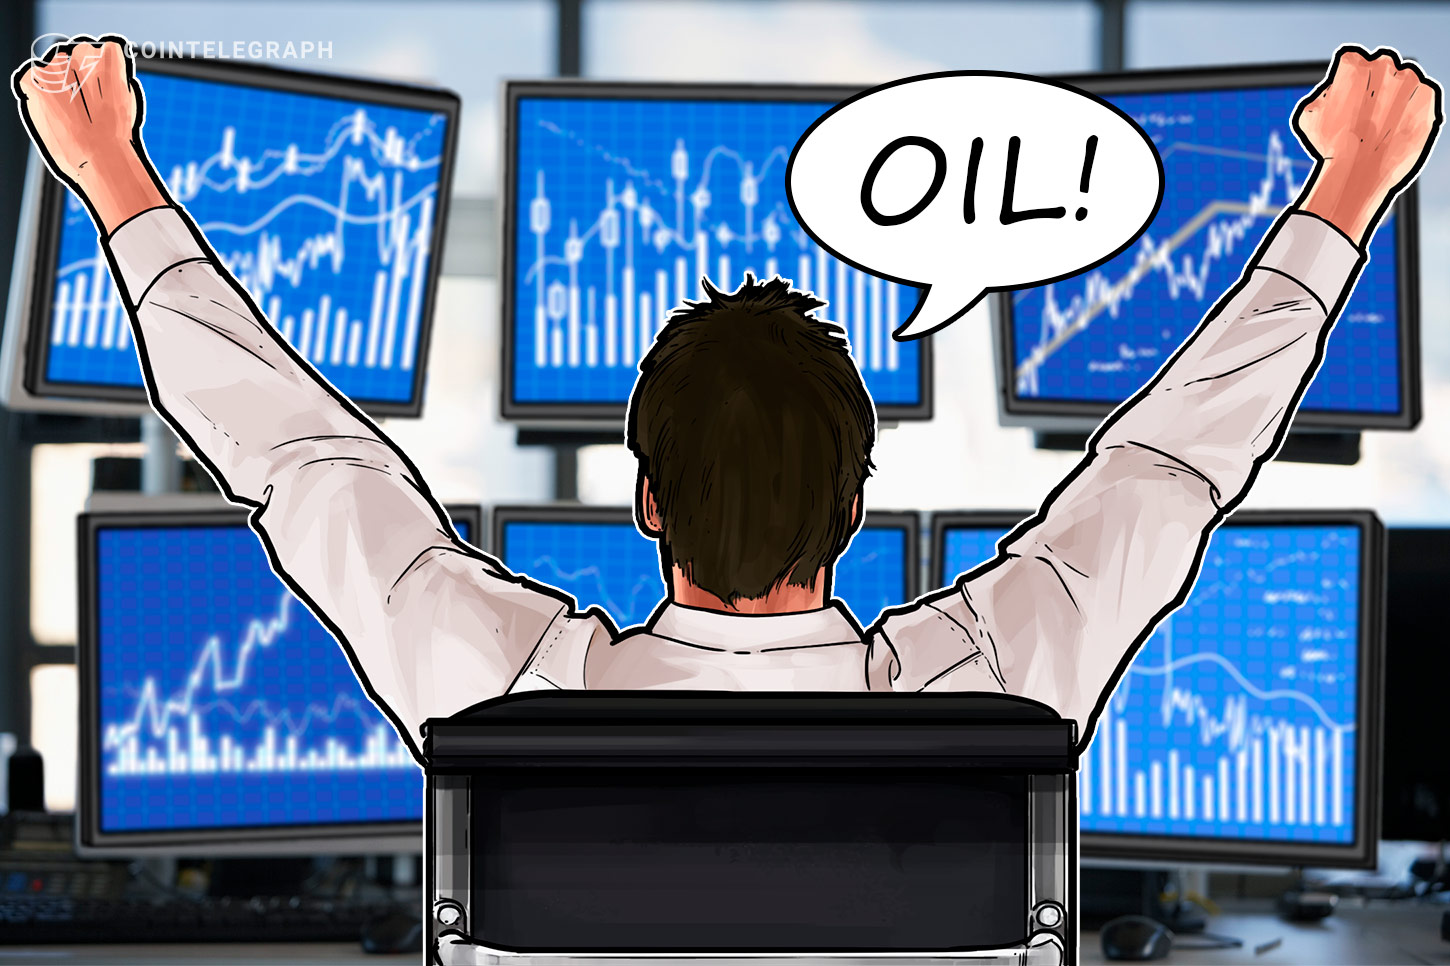 Traders Buy Oil Futures With Crypto Amid Record Volatility thumbnail